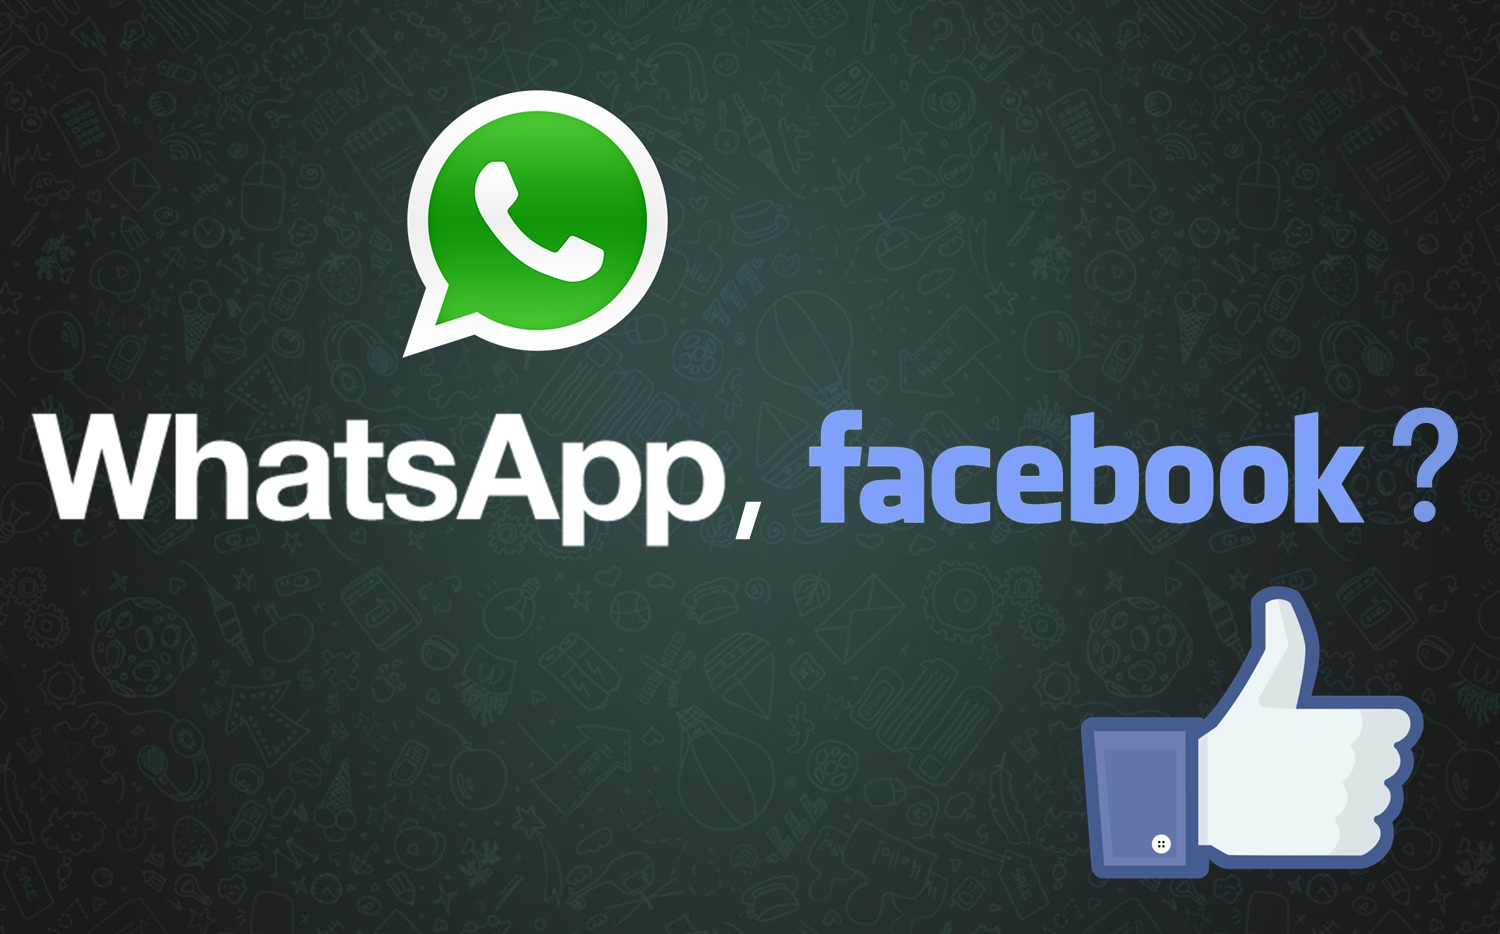 WhatsApp Will Start To Integrate Even More With Facebook